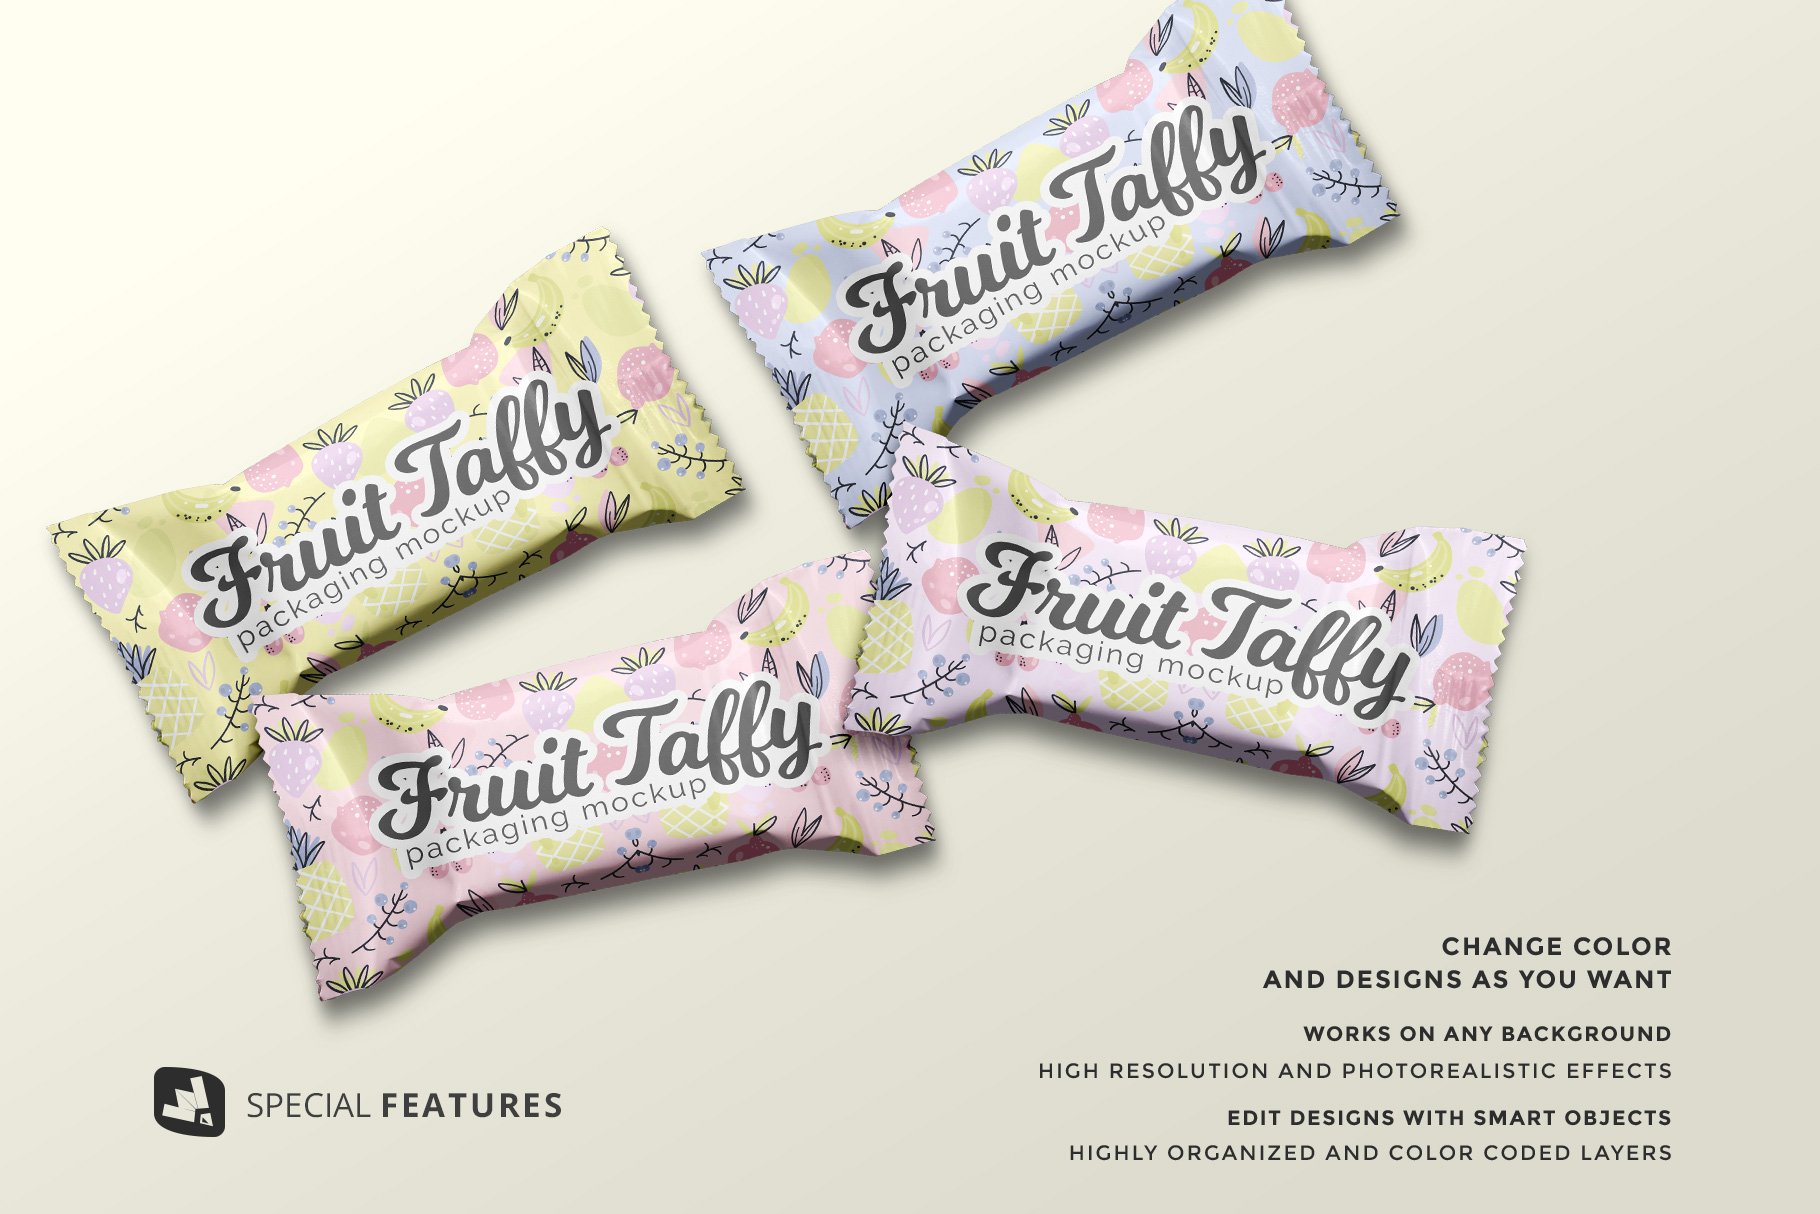 special features of the top view taffy packaging mockup